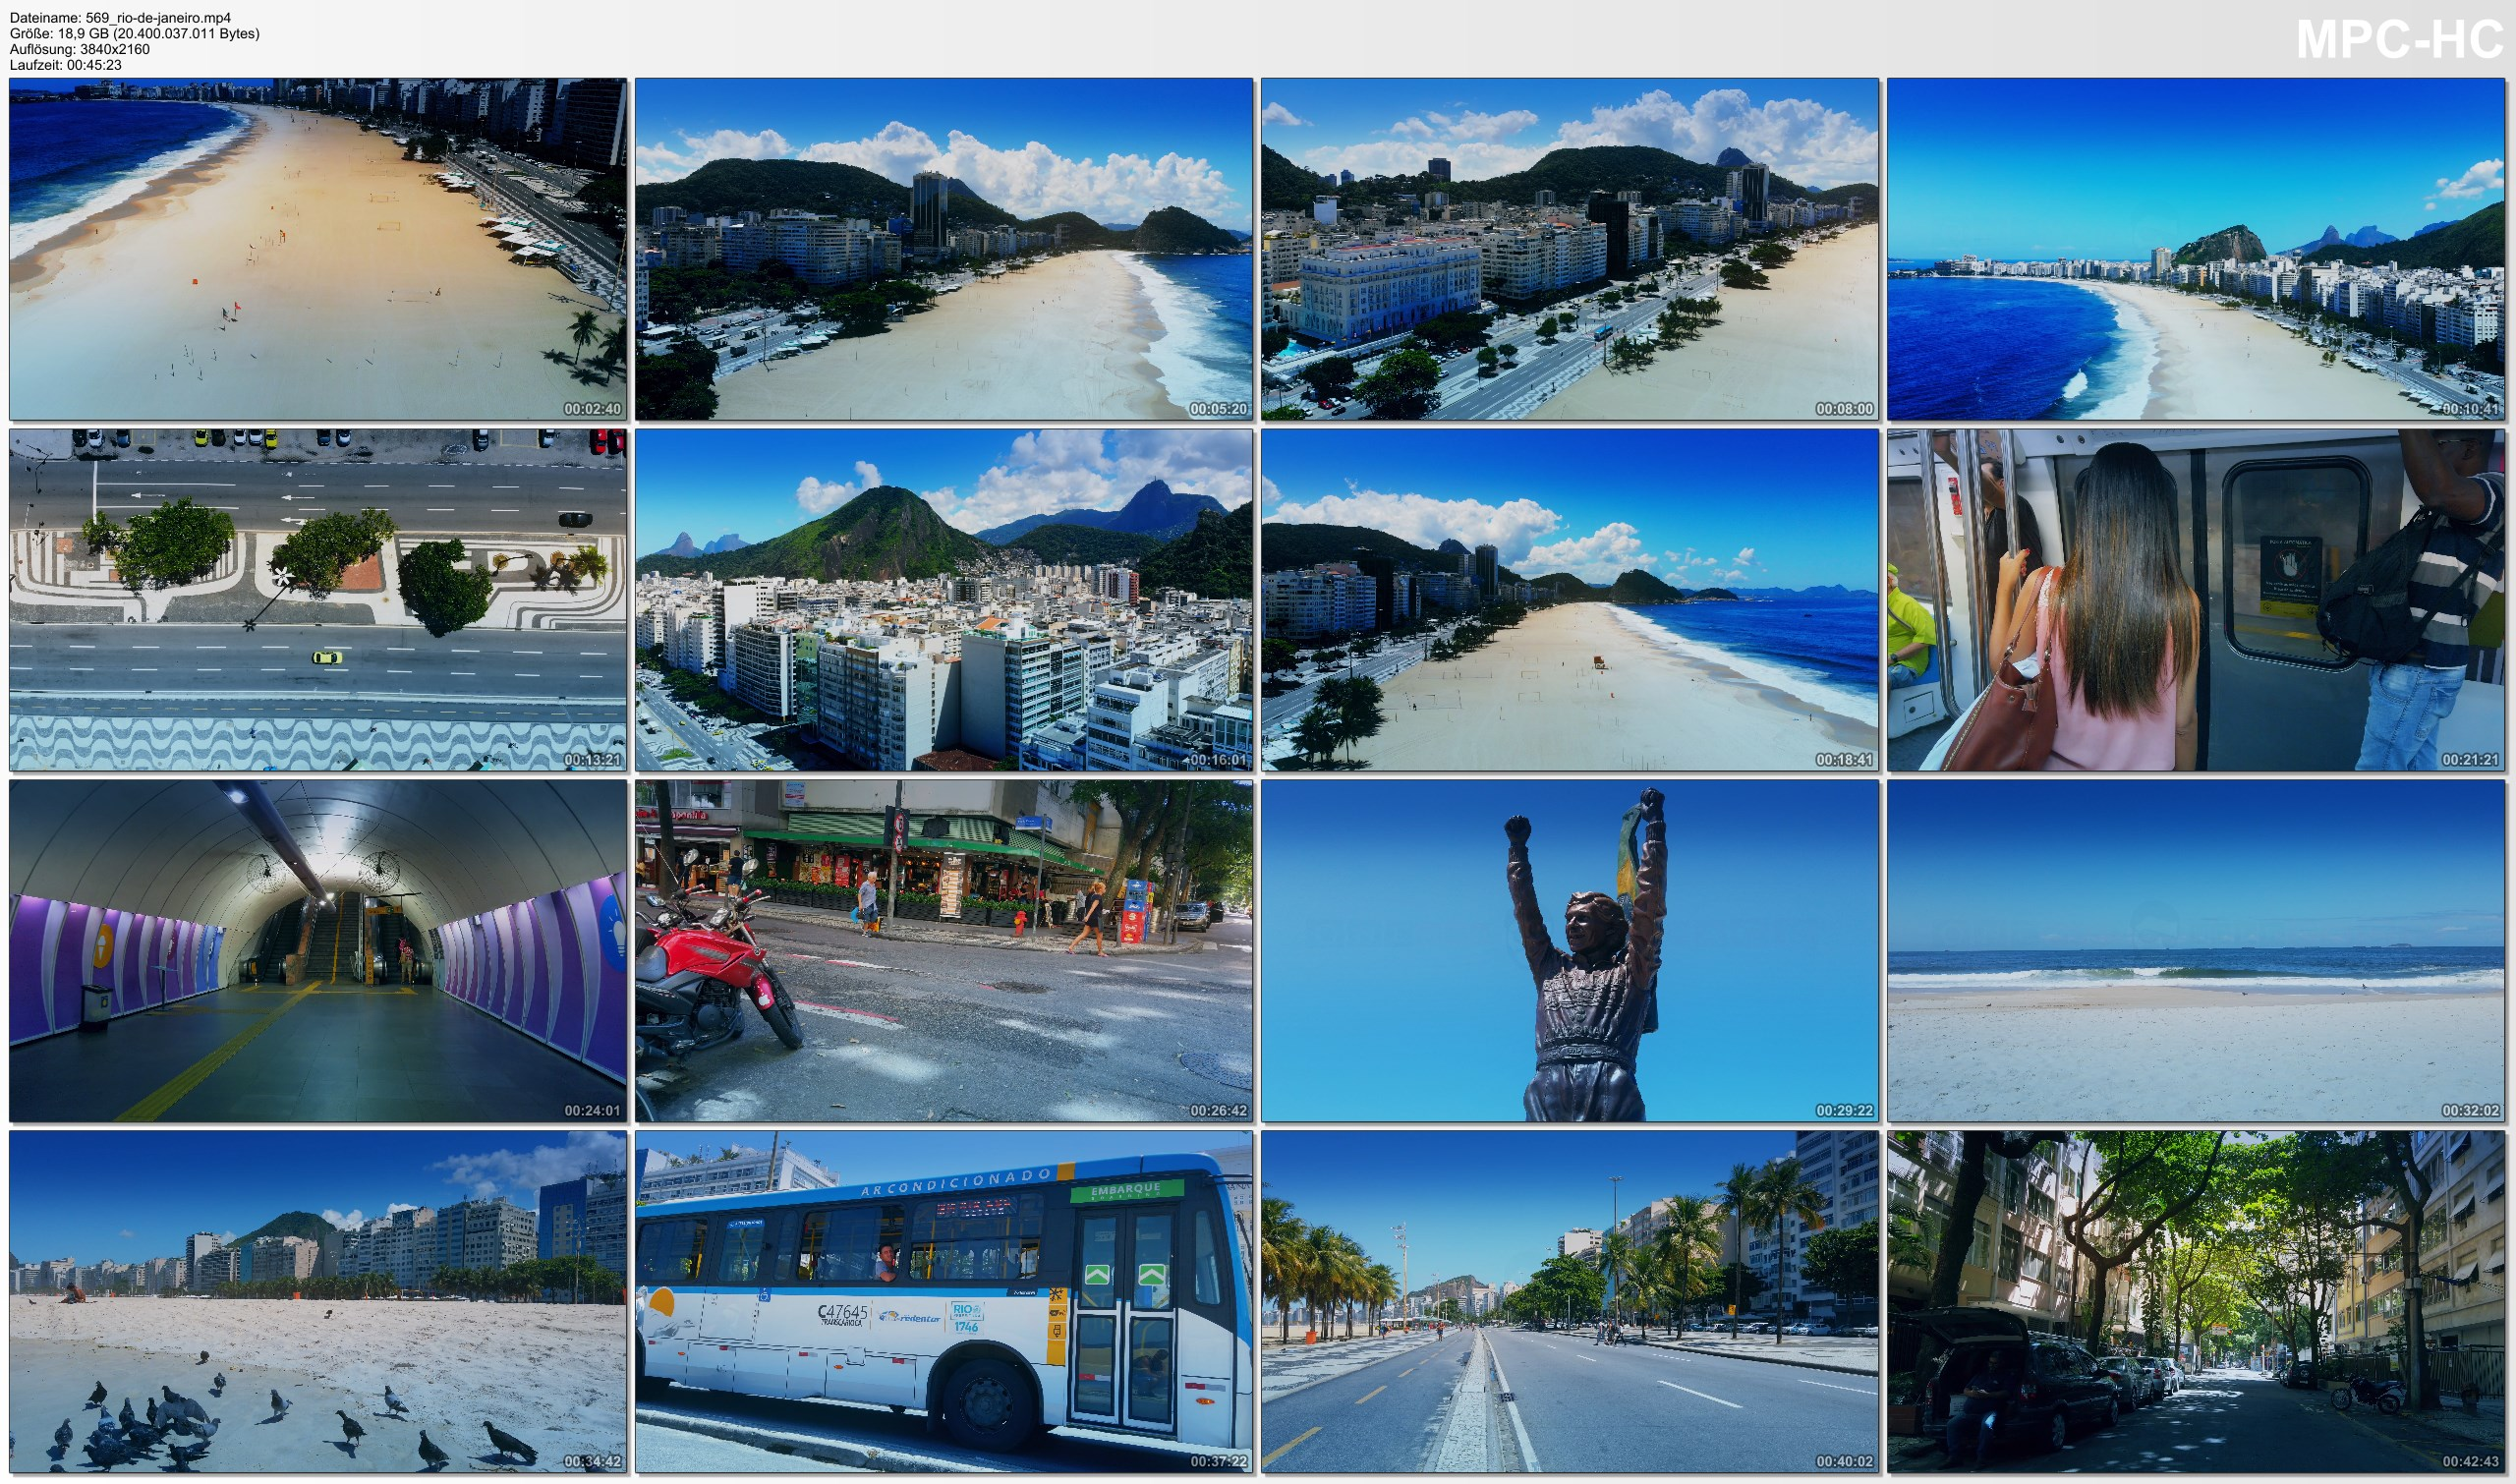 Drone Pictures from Video 【4K】Copacabana from Above   Rio de Janeiro Beach Drone Footage   Times of Corona Virus   BRAZIL 2020